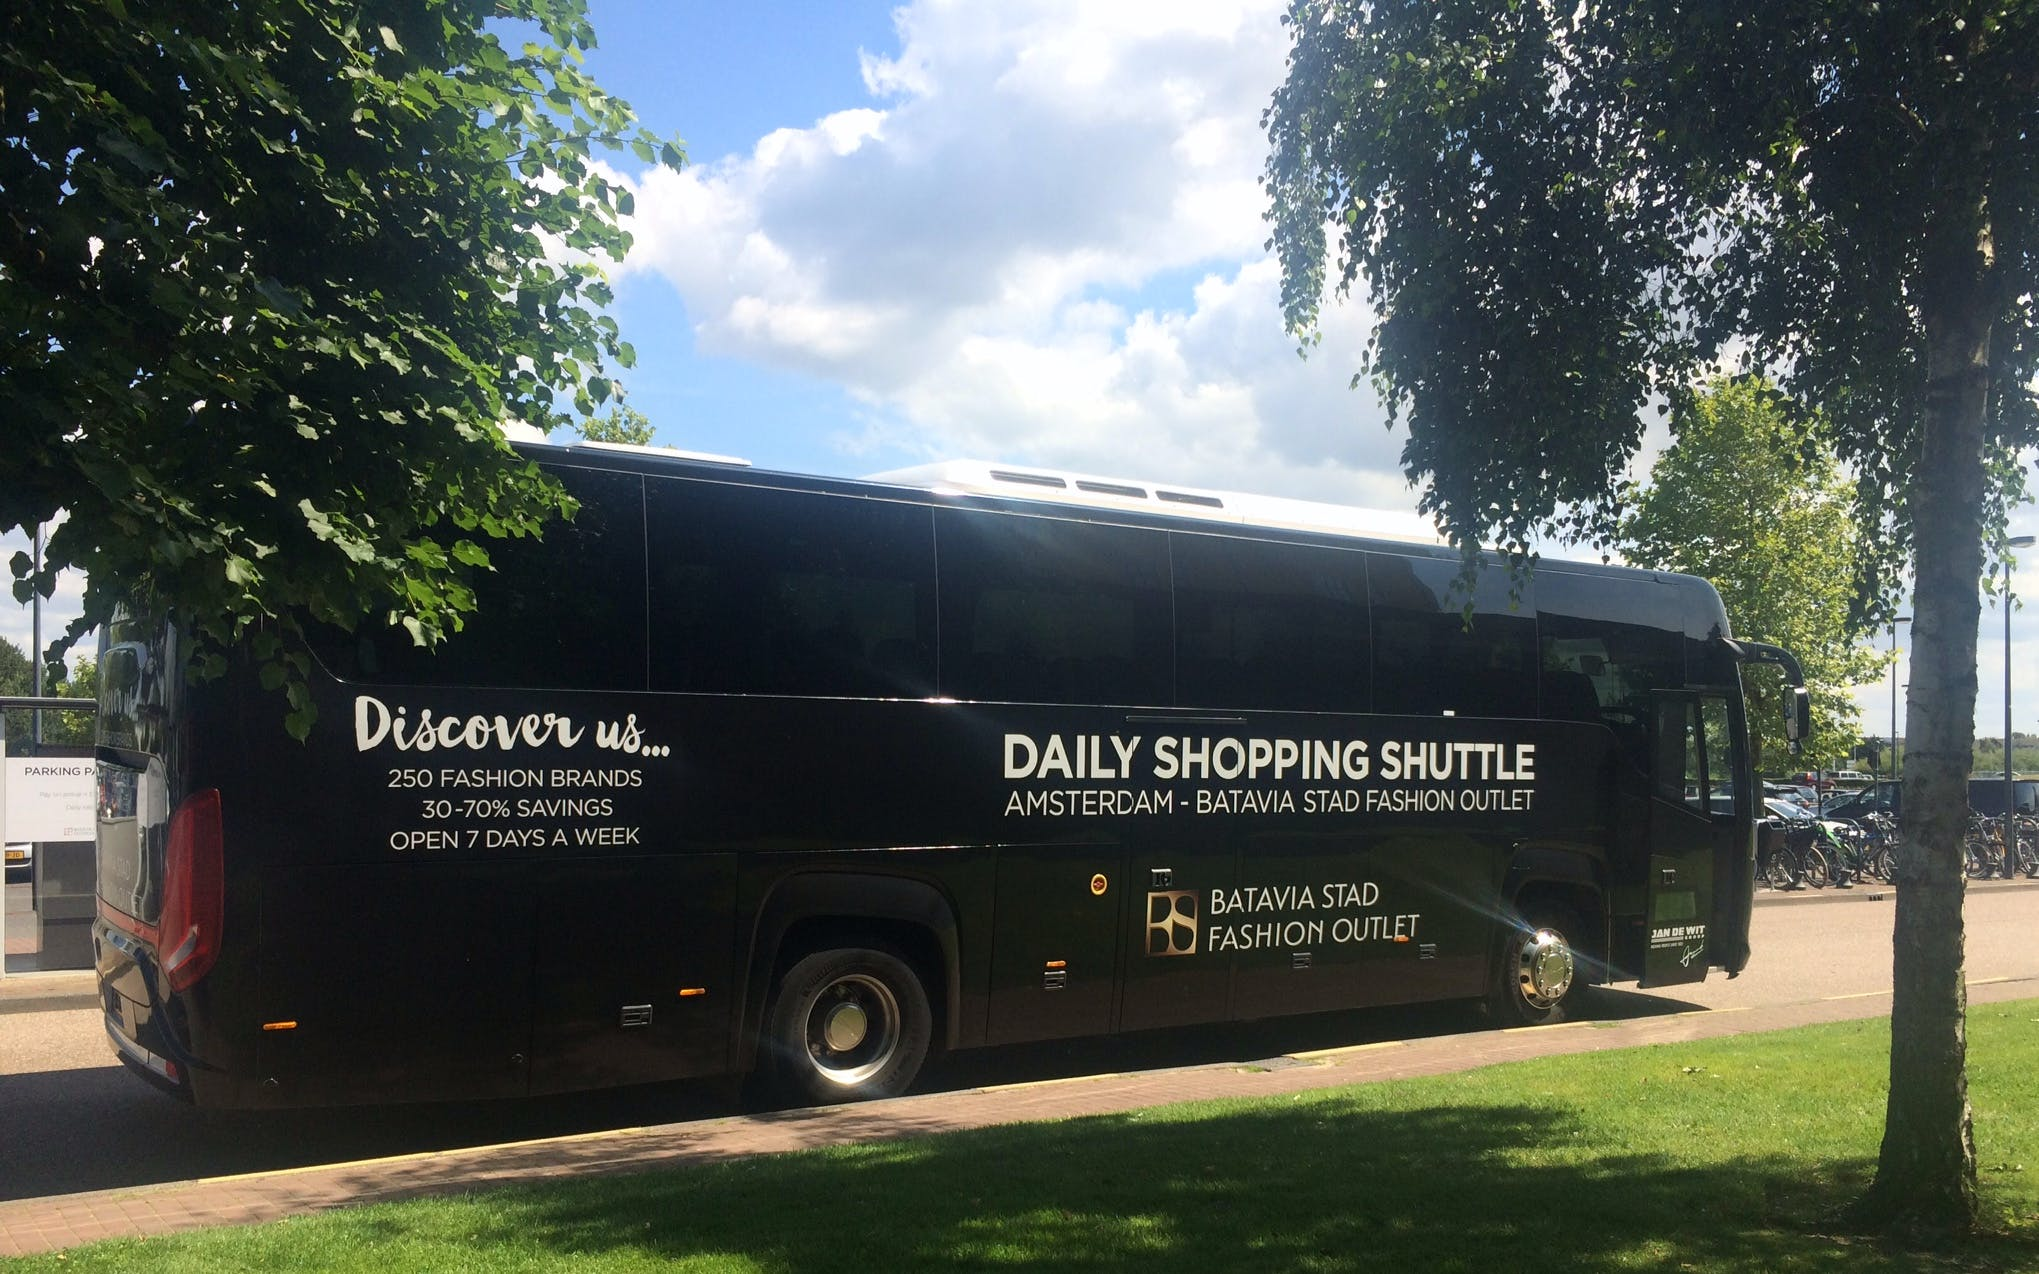 shopping shuttle to batavia stad fashion outlet-3